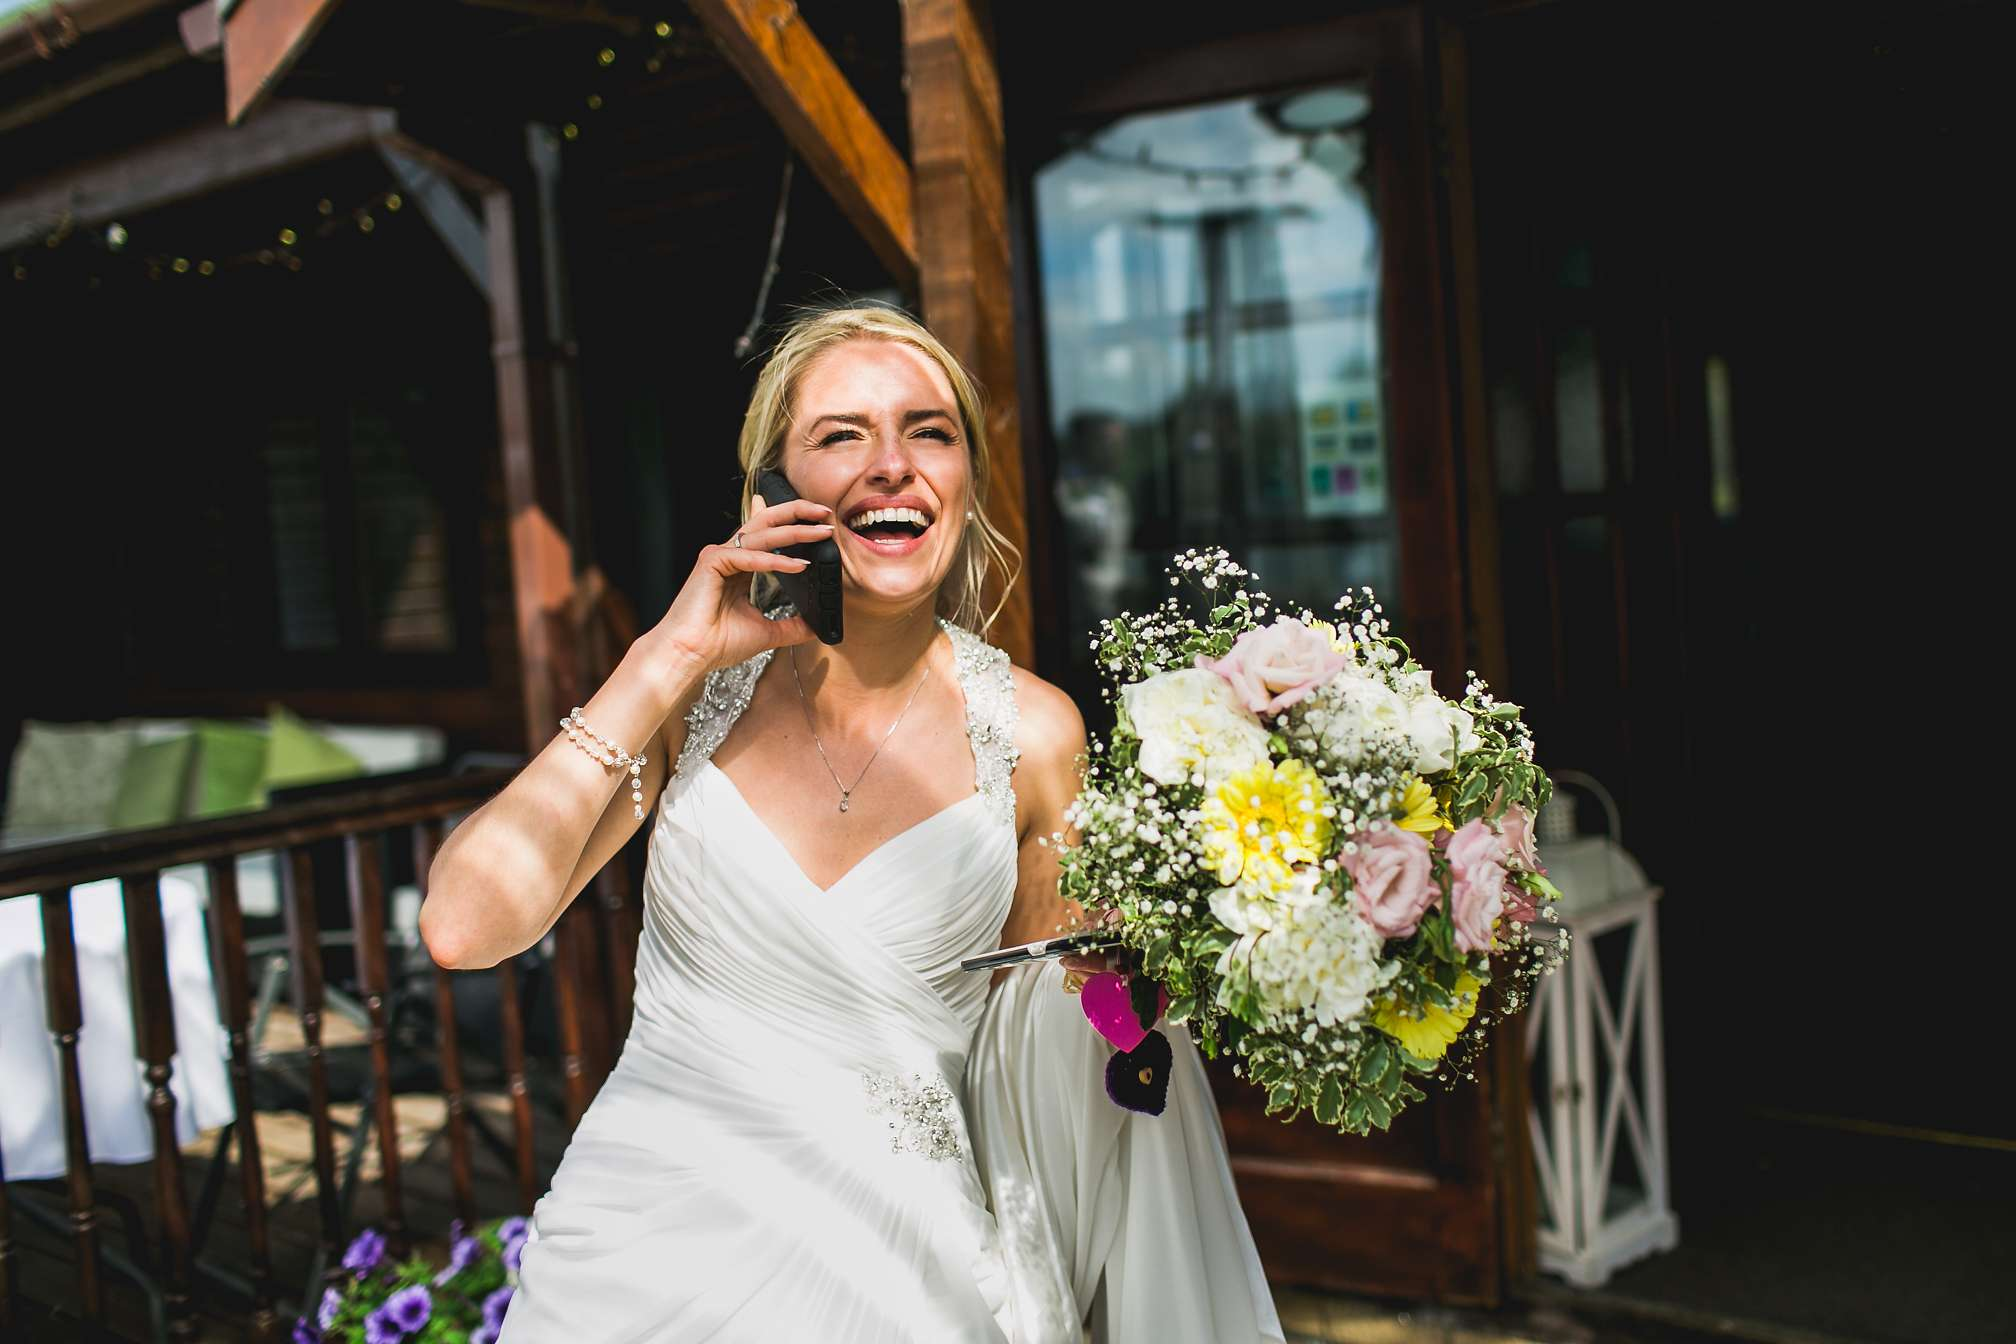 Laughing bride on the phone